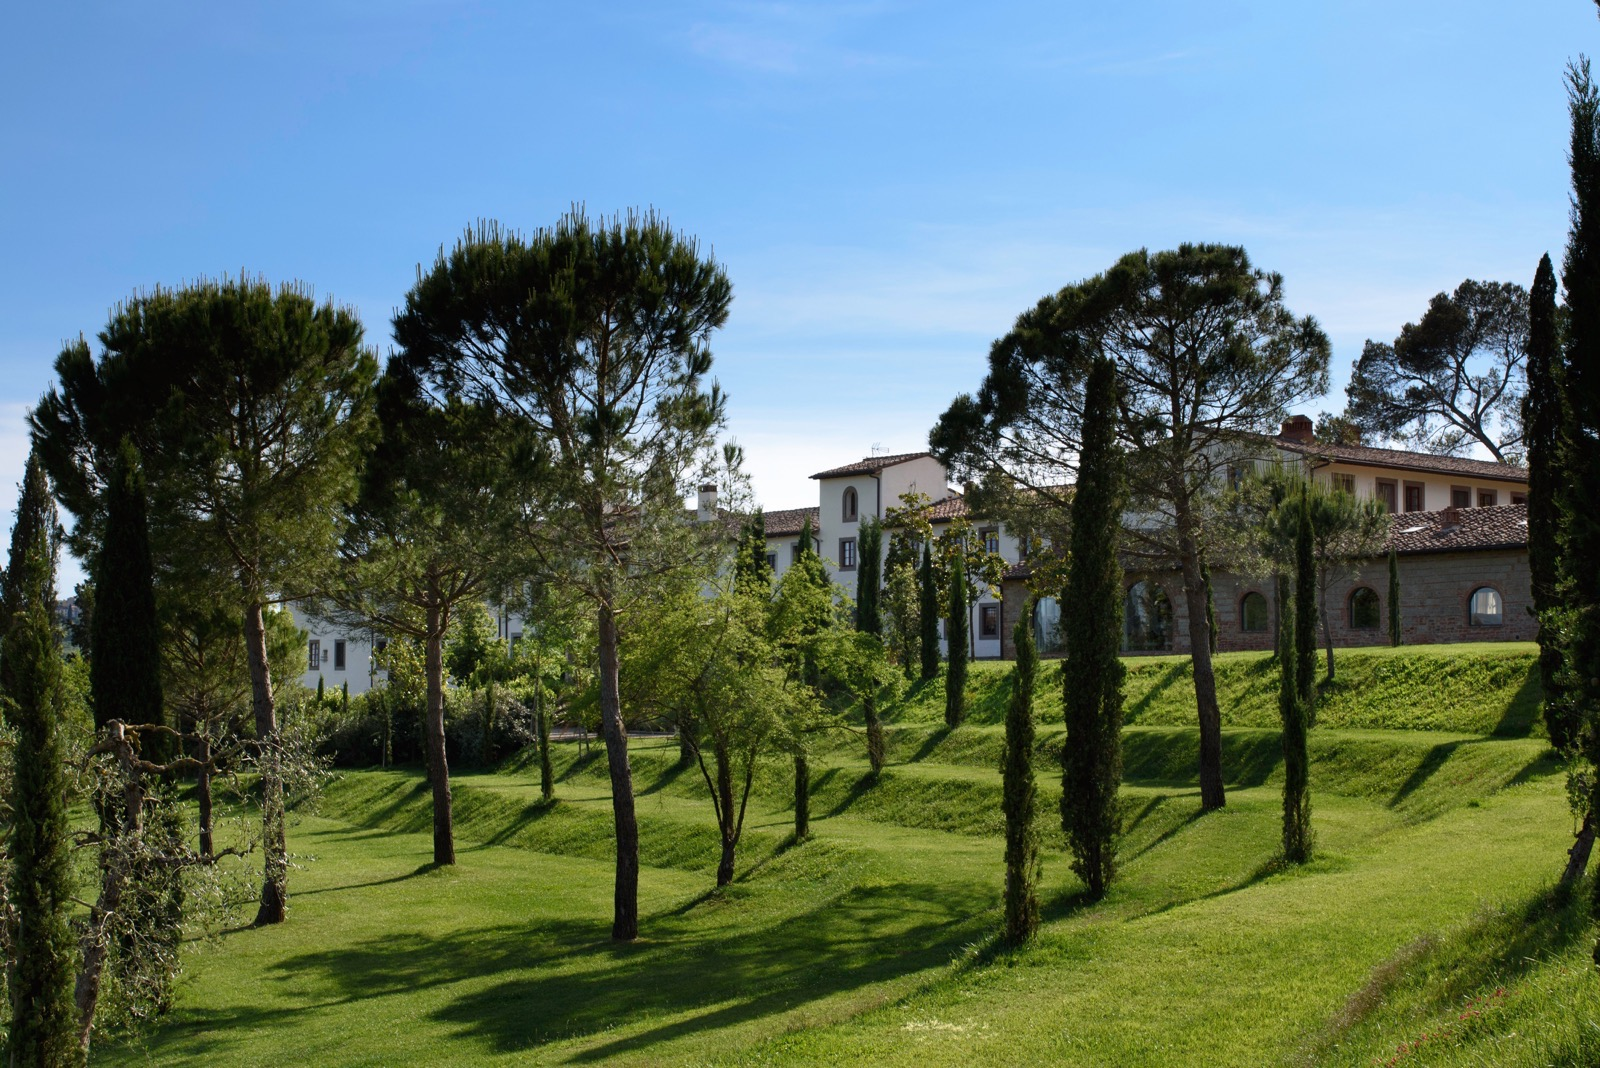 view of Laudomia Pucci private estate